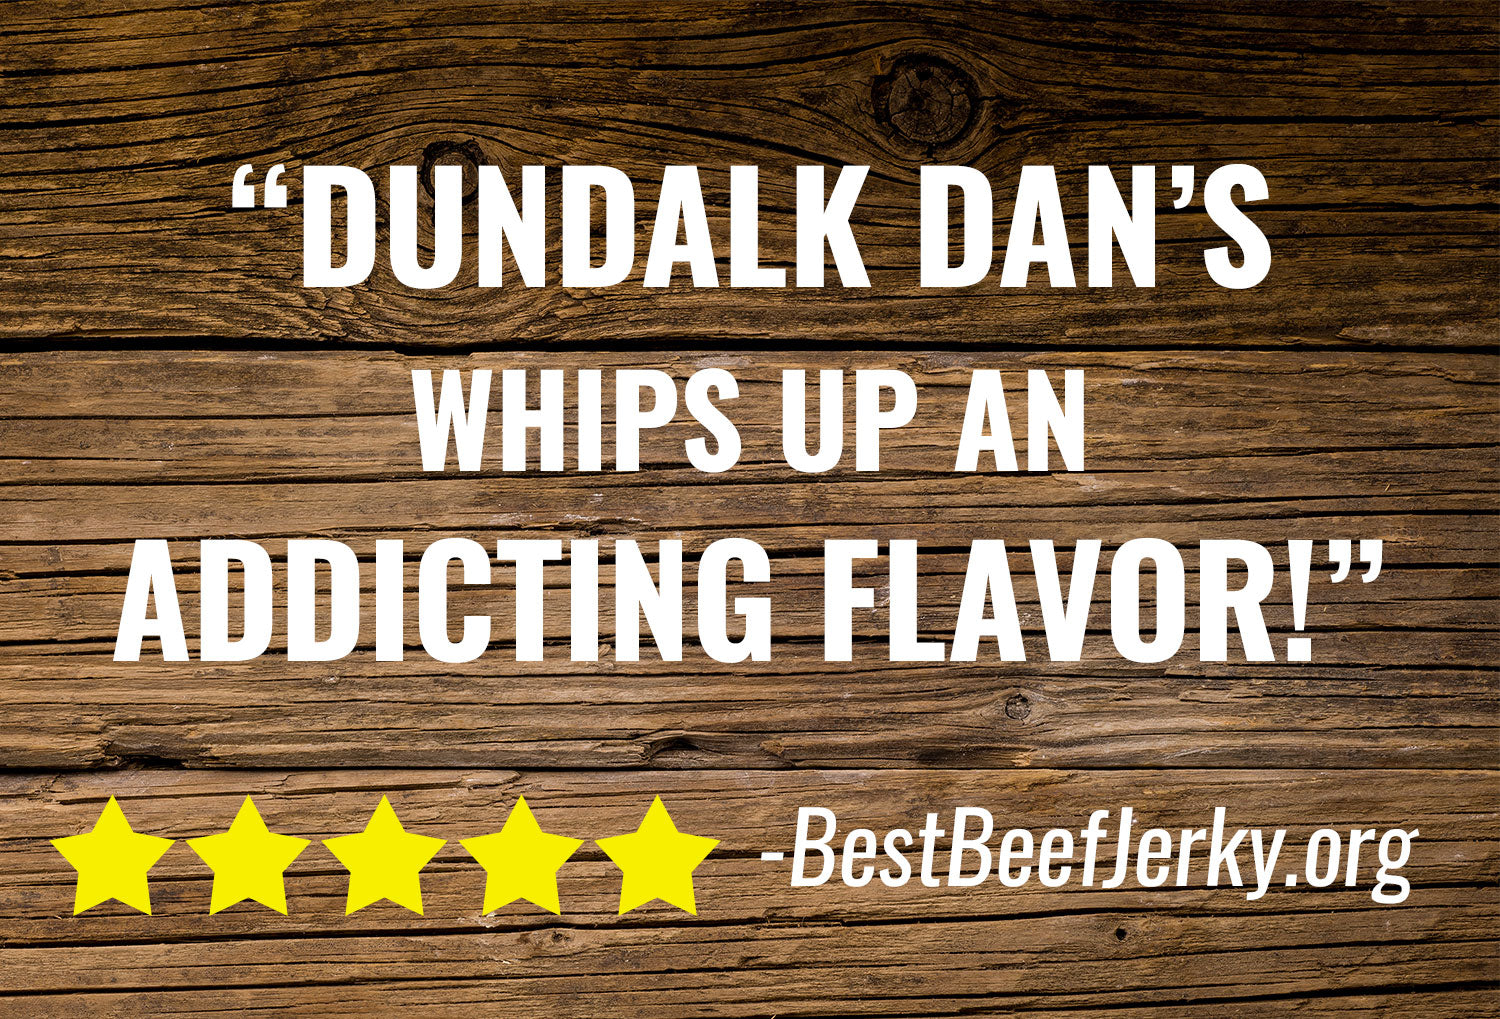 Dundalk Dan's whips ups an addicting flavor!